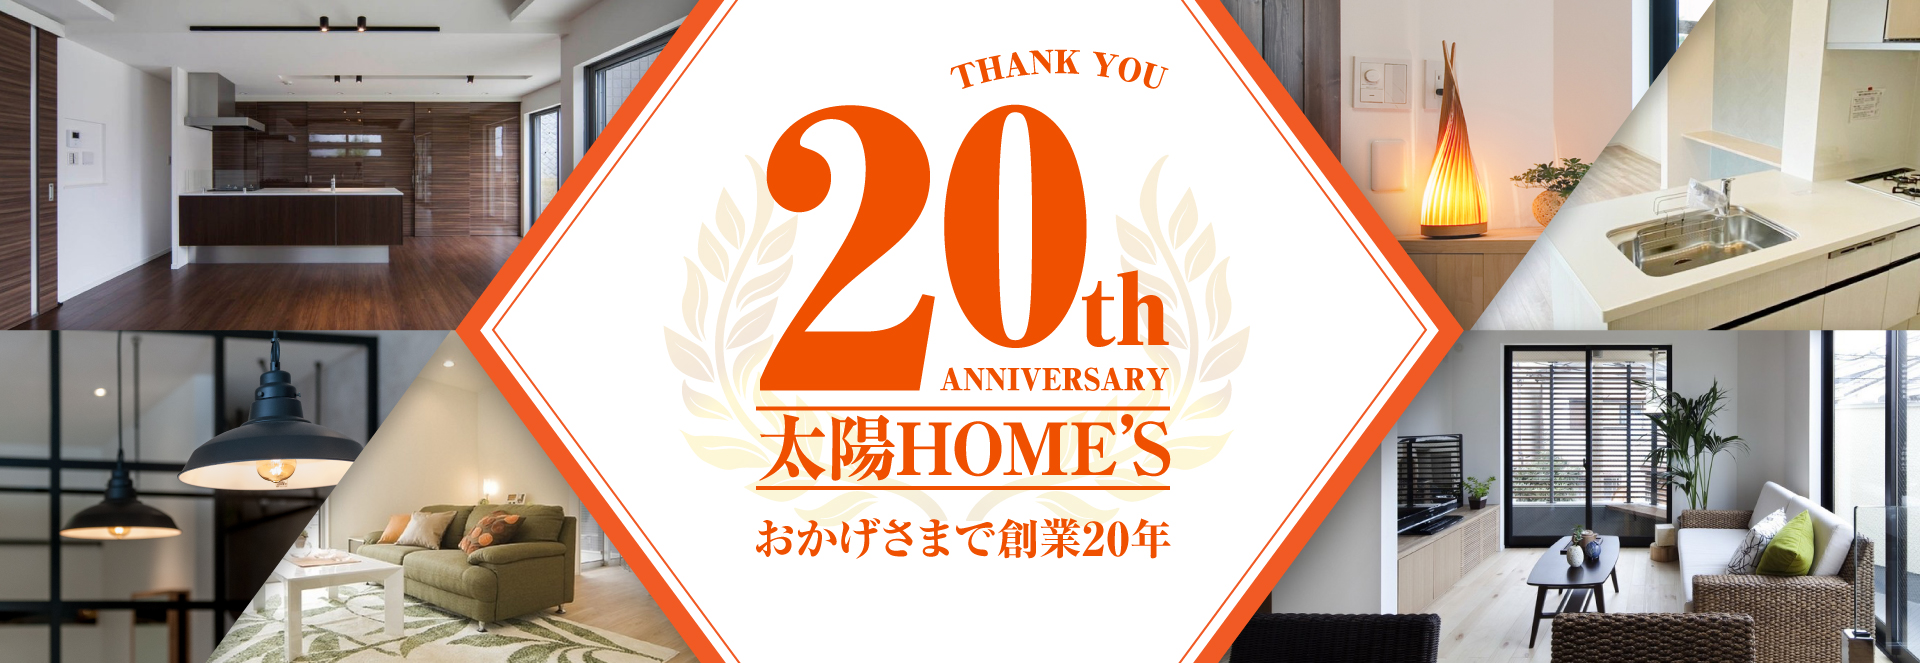 THANK YOU 20th ANNIVERSARY 太陽HOME'S おかげさまで創業20年